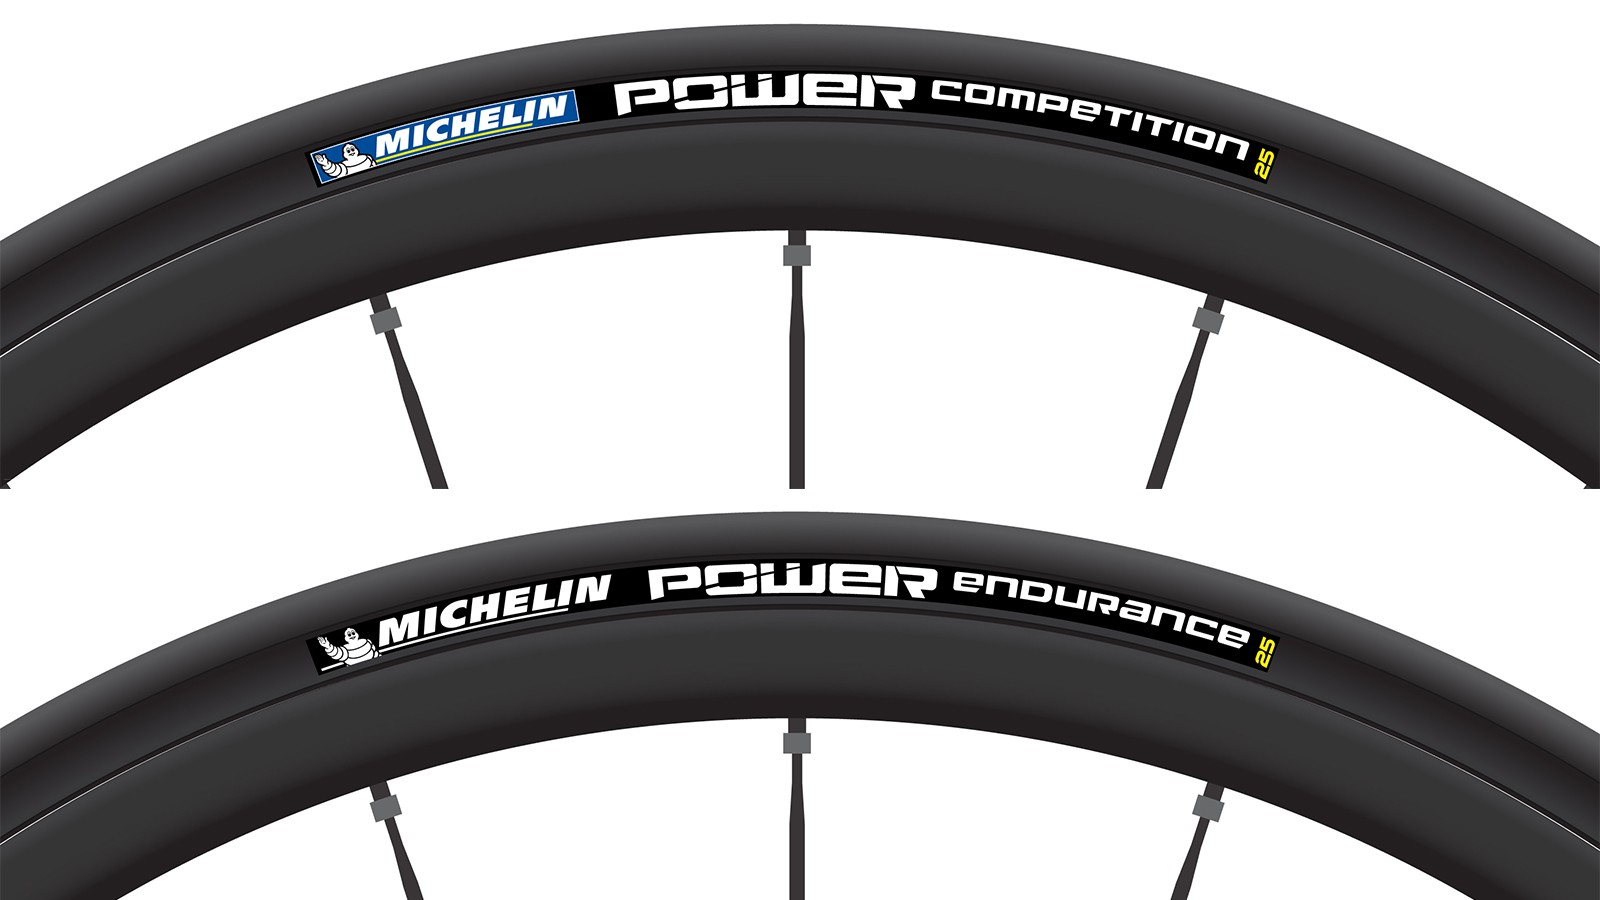 Michelin claims its new Power line is faster and stronger than previous tires